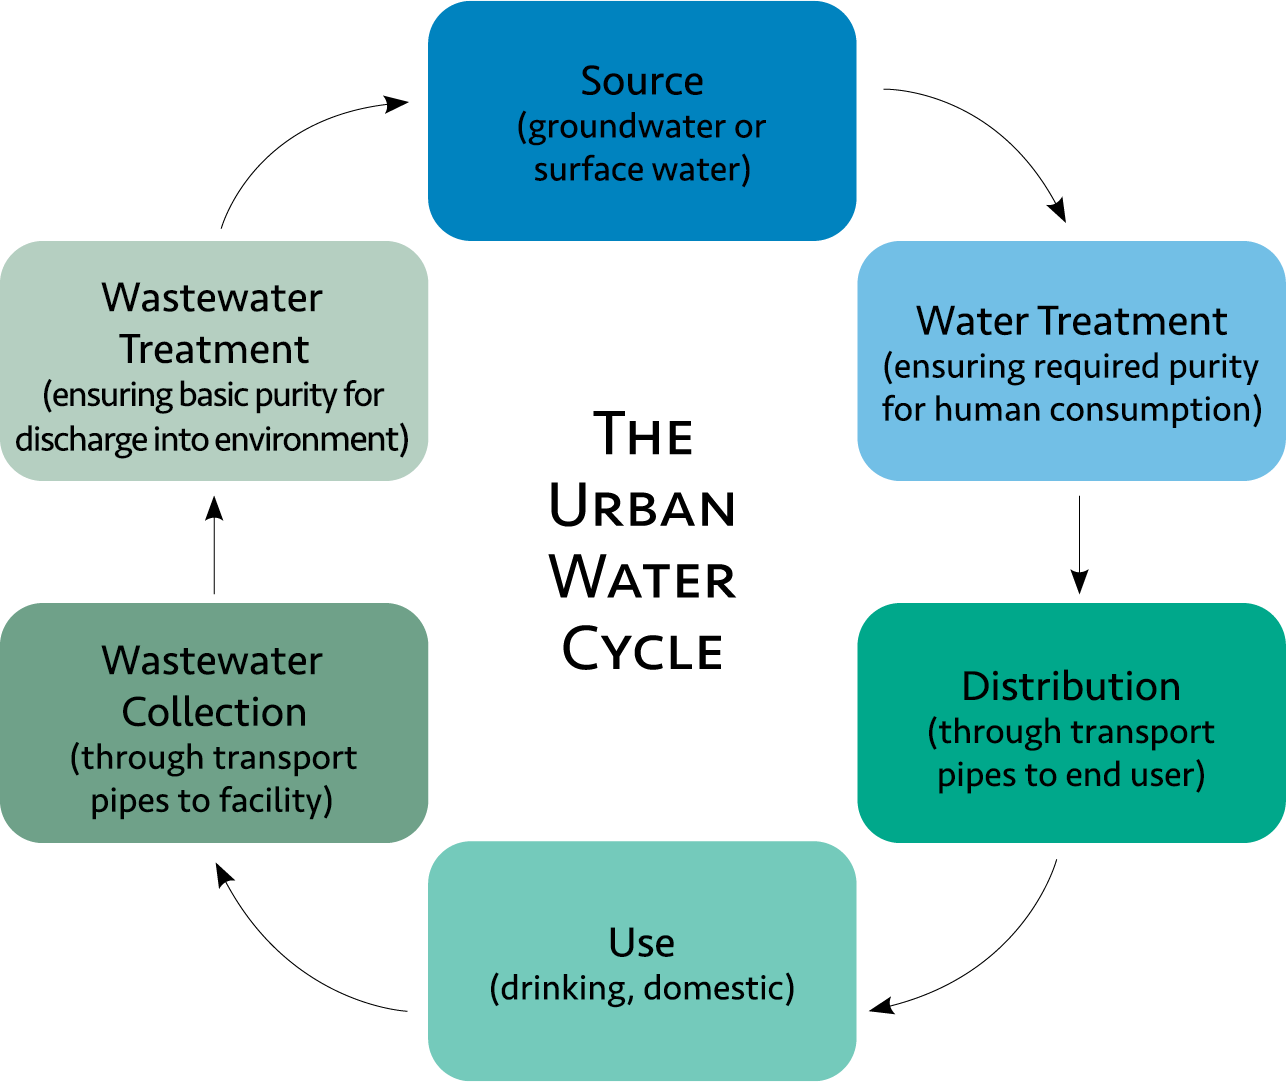 Flow chart showing the urban water cycle. The cycle goes: Source (groundwater or surface water), water treatment (ensuring required purity for human consumption), distribution (through transport pipes to end user), use (drinking, domestic), wastewater collection (through transport pipes to facility), wastewater treatment (ensuring basic purity for discharge into environment), and repeat.